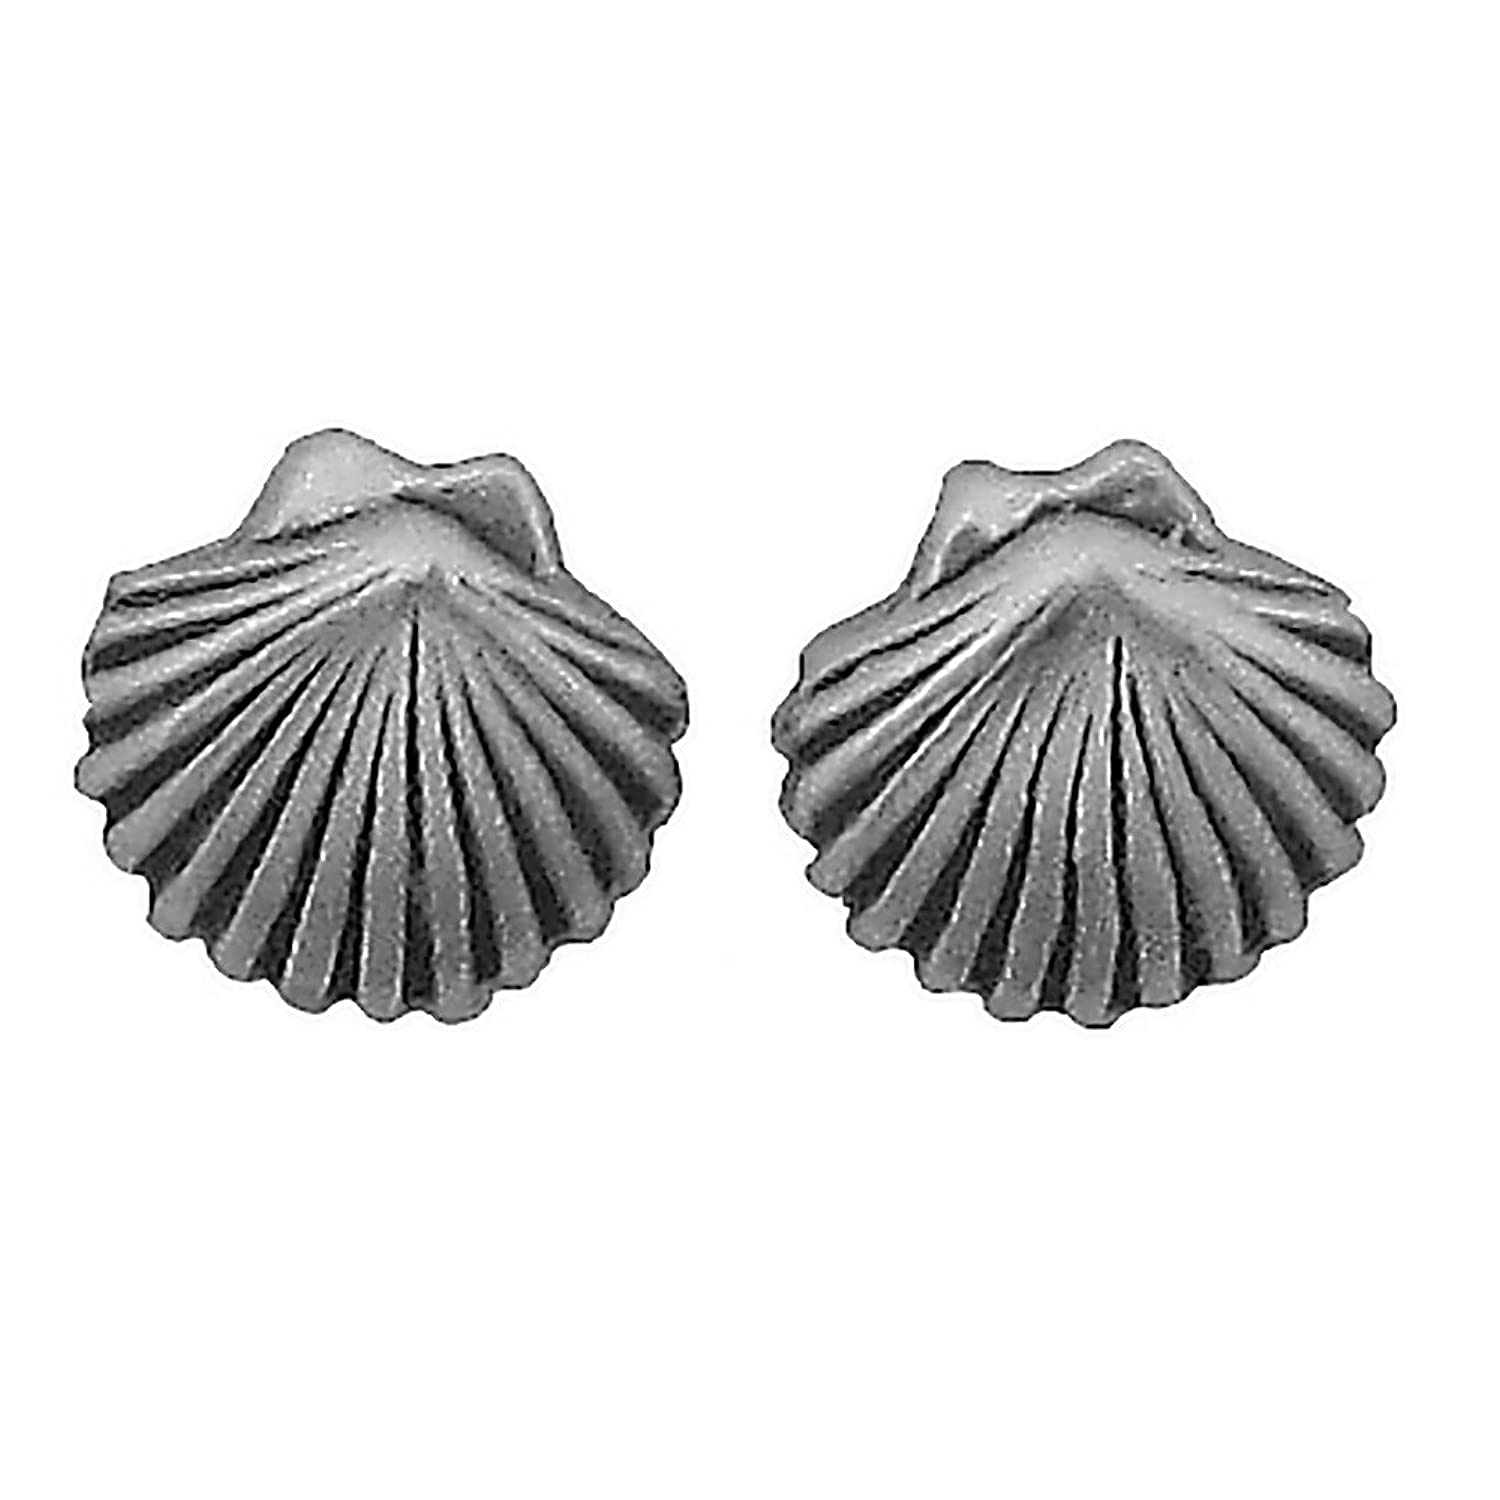 original jewellery seashell silver wimbush earrings studs stud katewimbushjewellery product shell by kate